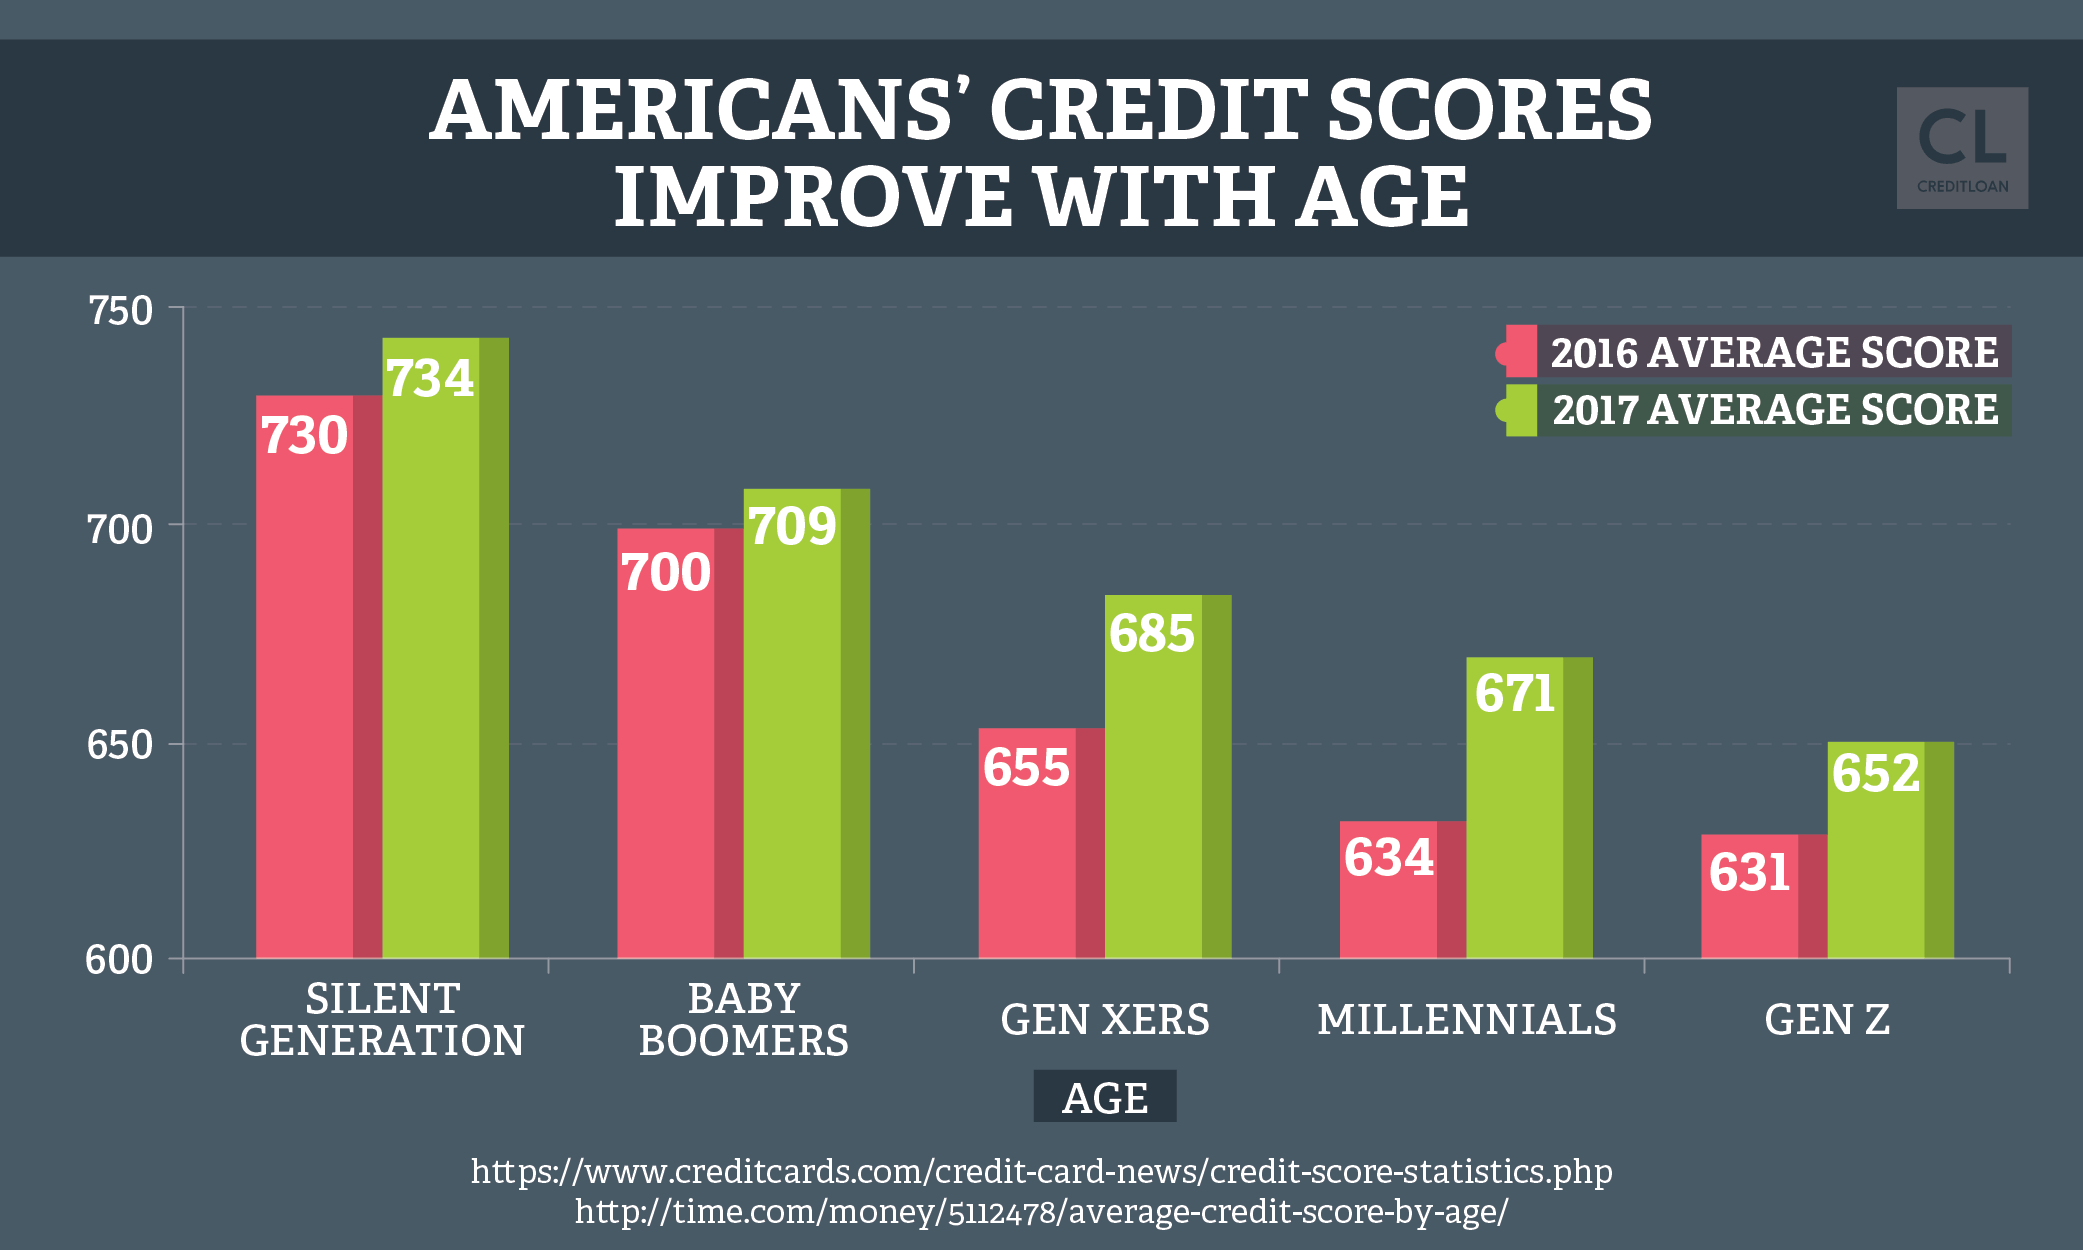 U.S. Credit Scores By Age 2016-2017